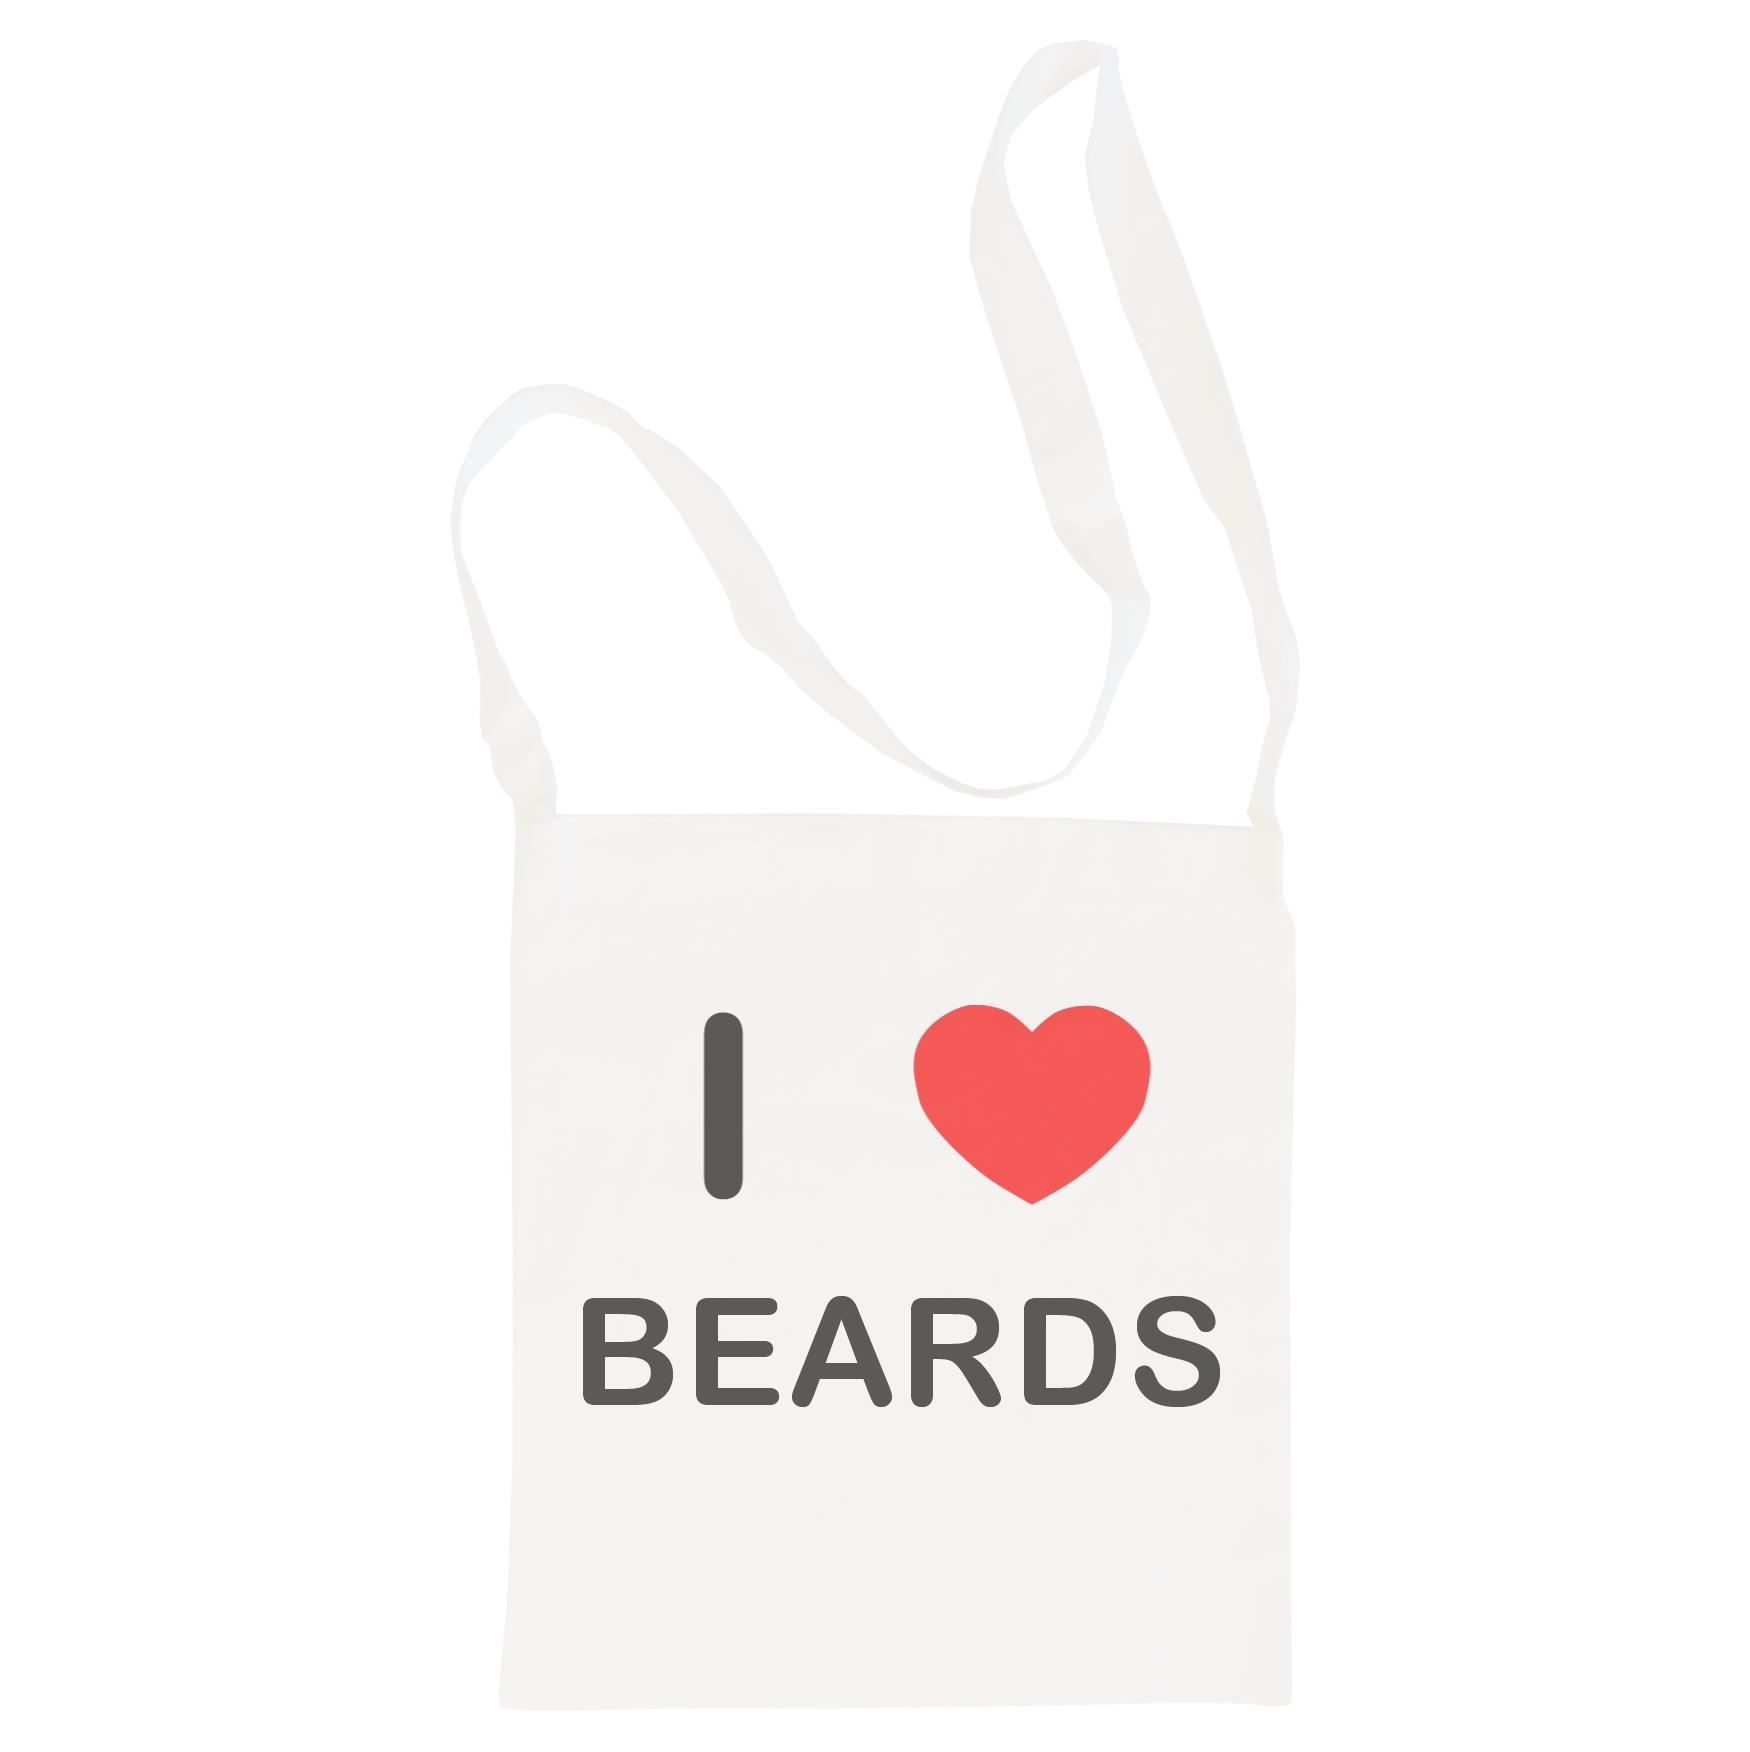 I Love Beards - Cotton Bag | Size choice Tote, Shopper or Sling